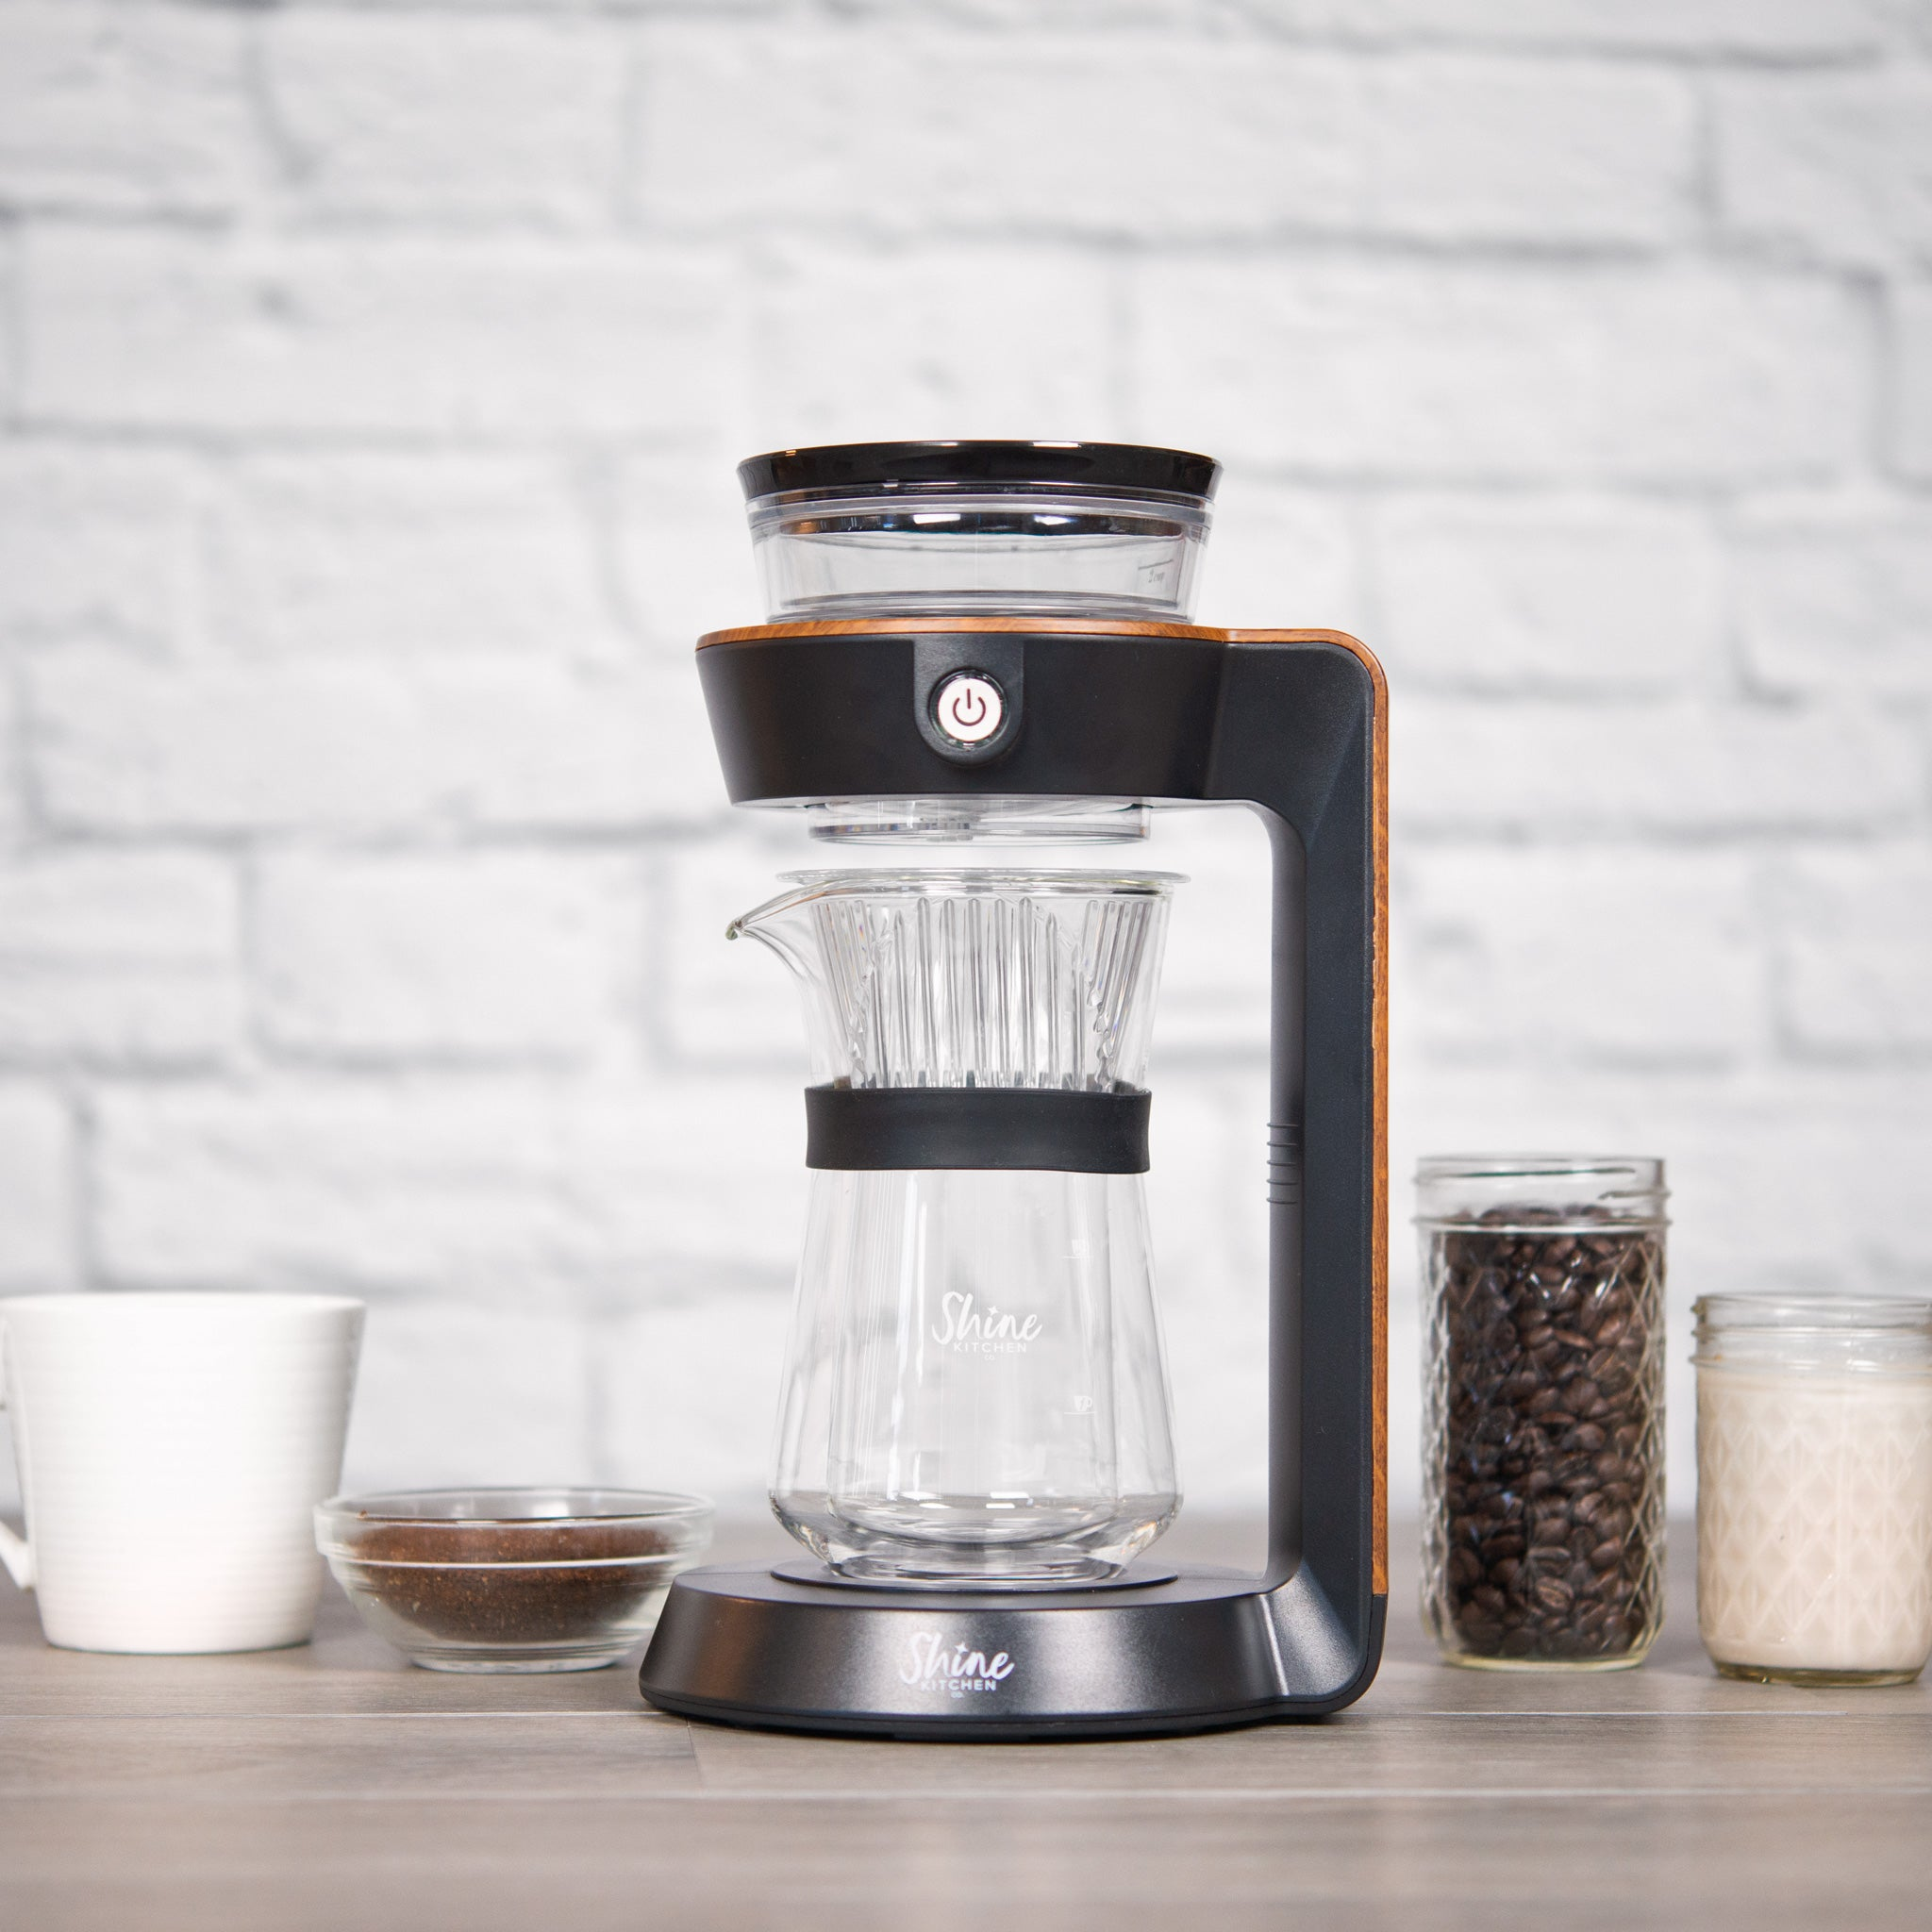 Shine Kitchen Co. Autopour Automatic Pour Over Coffee Machine